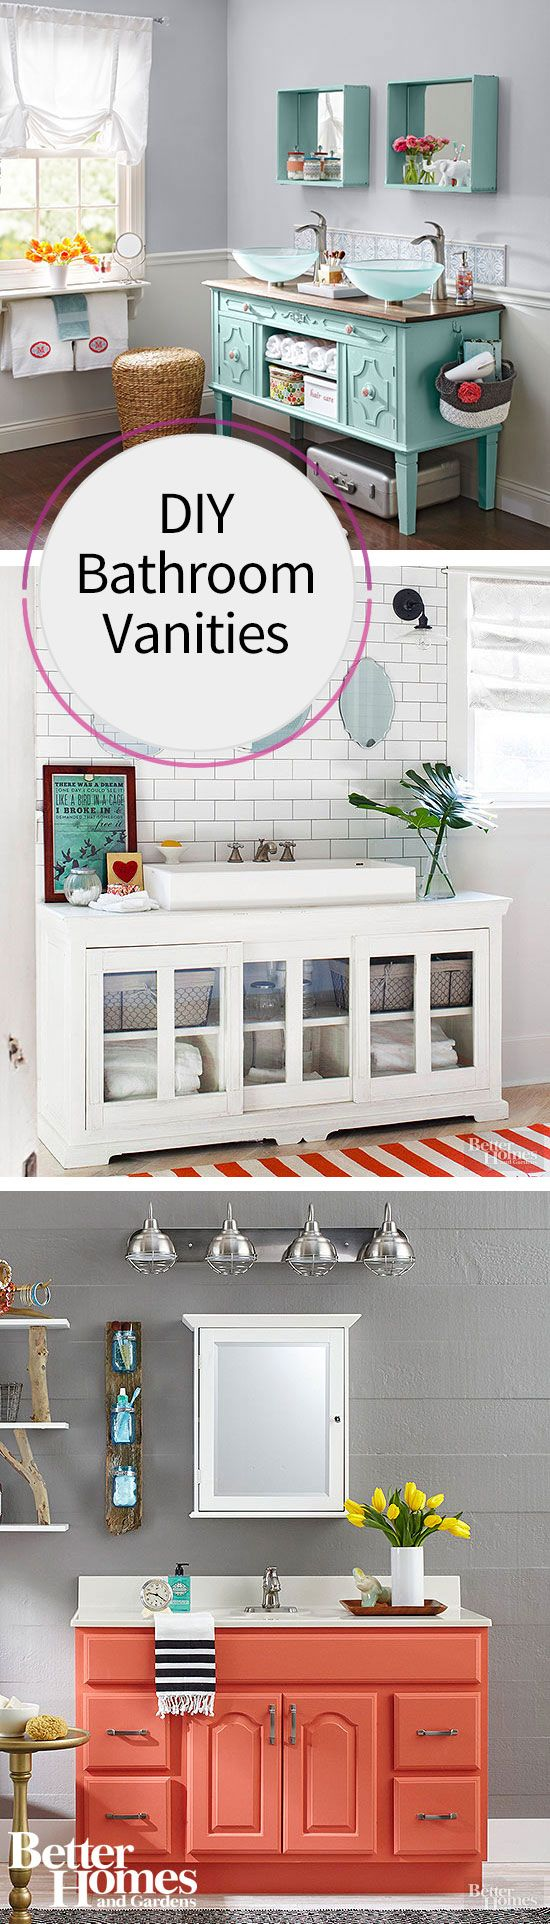 Best Diy Bathroom Vanity Ideas On Pinterest Bathroom Vanity - Salvage bathroom vanity cabinets for bathroom decor ideas